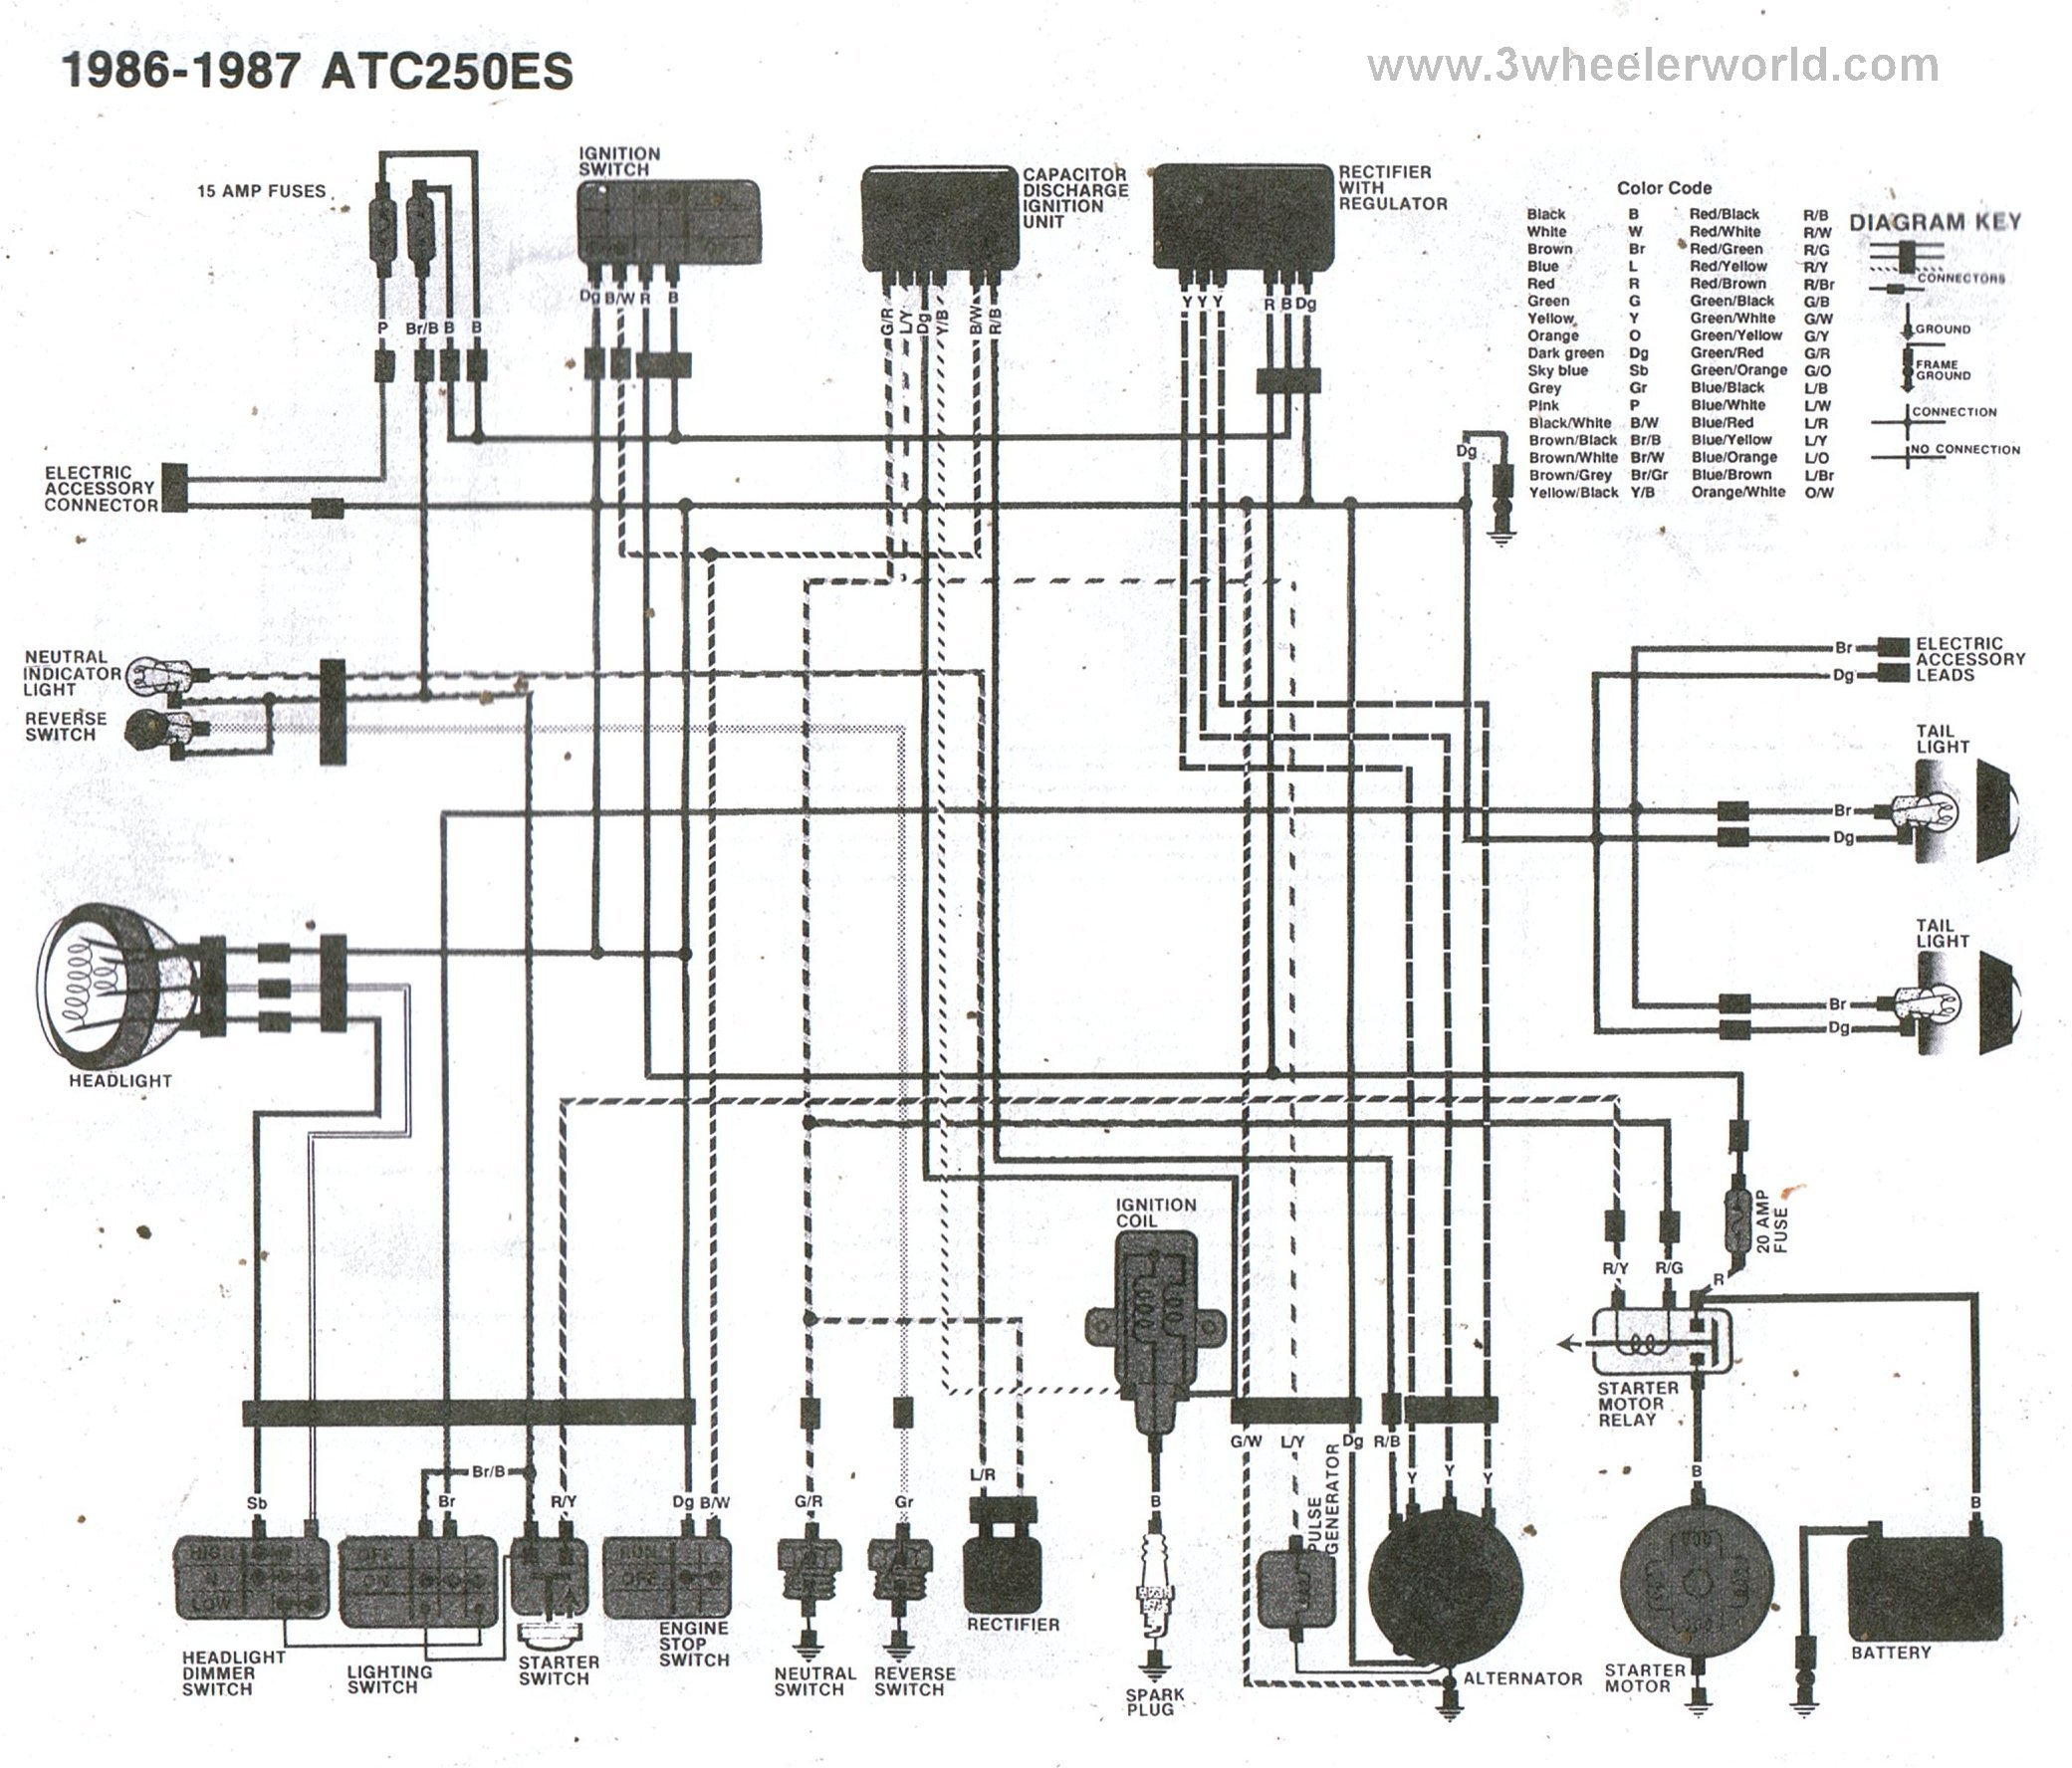 ATC250ESx86Thru87 3 wheeler world tech help honda wiring diagrams atc 300 wiring diagram at edmiracle.co